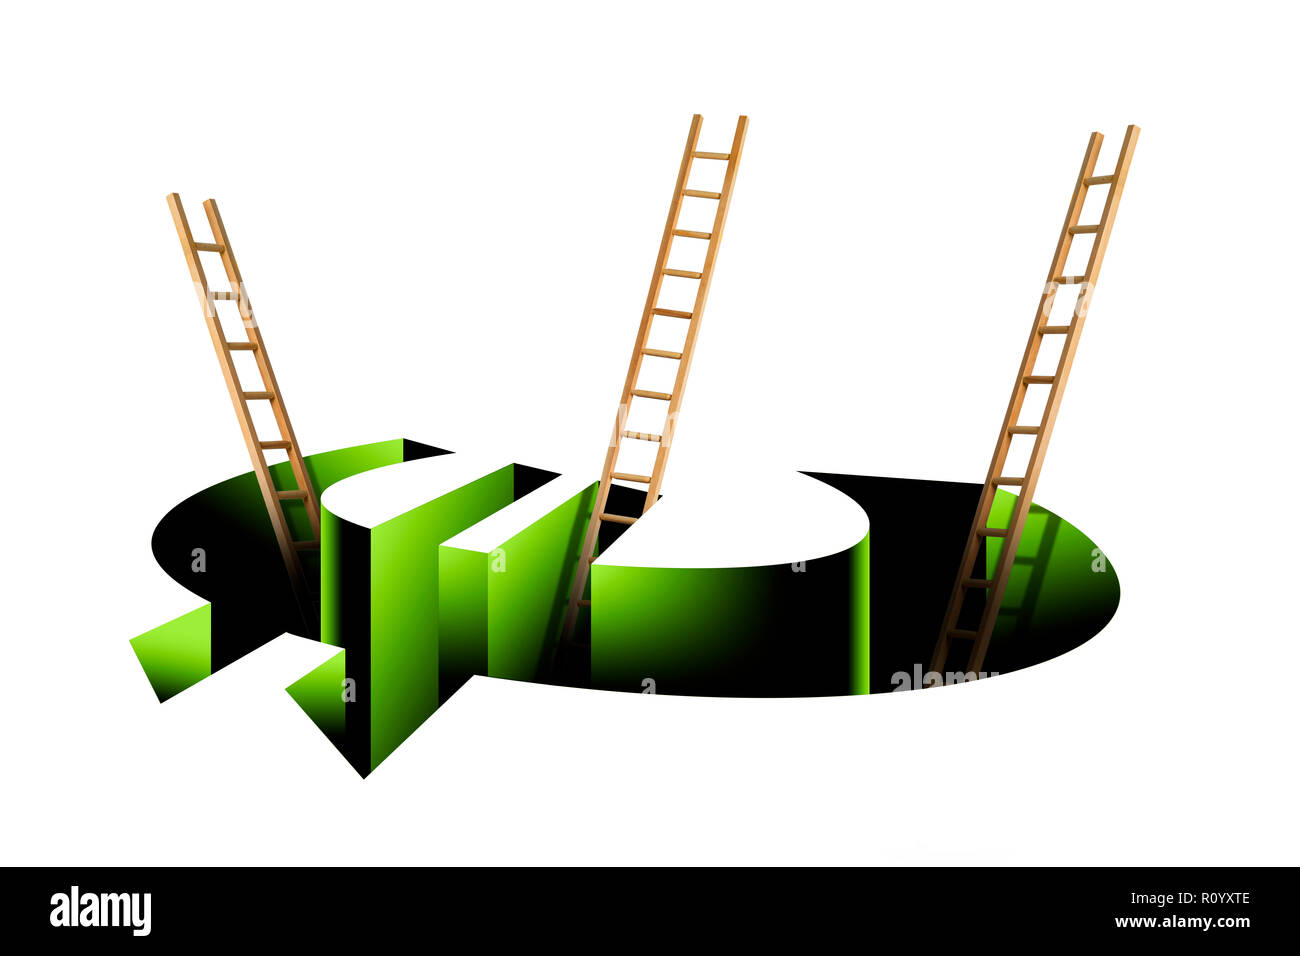 Three ladders protruding from three dimensional euro currency sign. White background - Stock Image